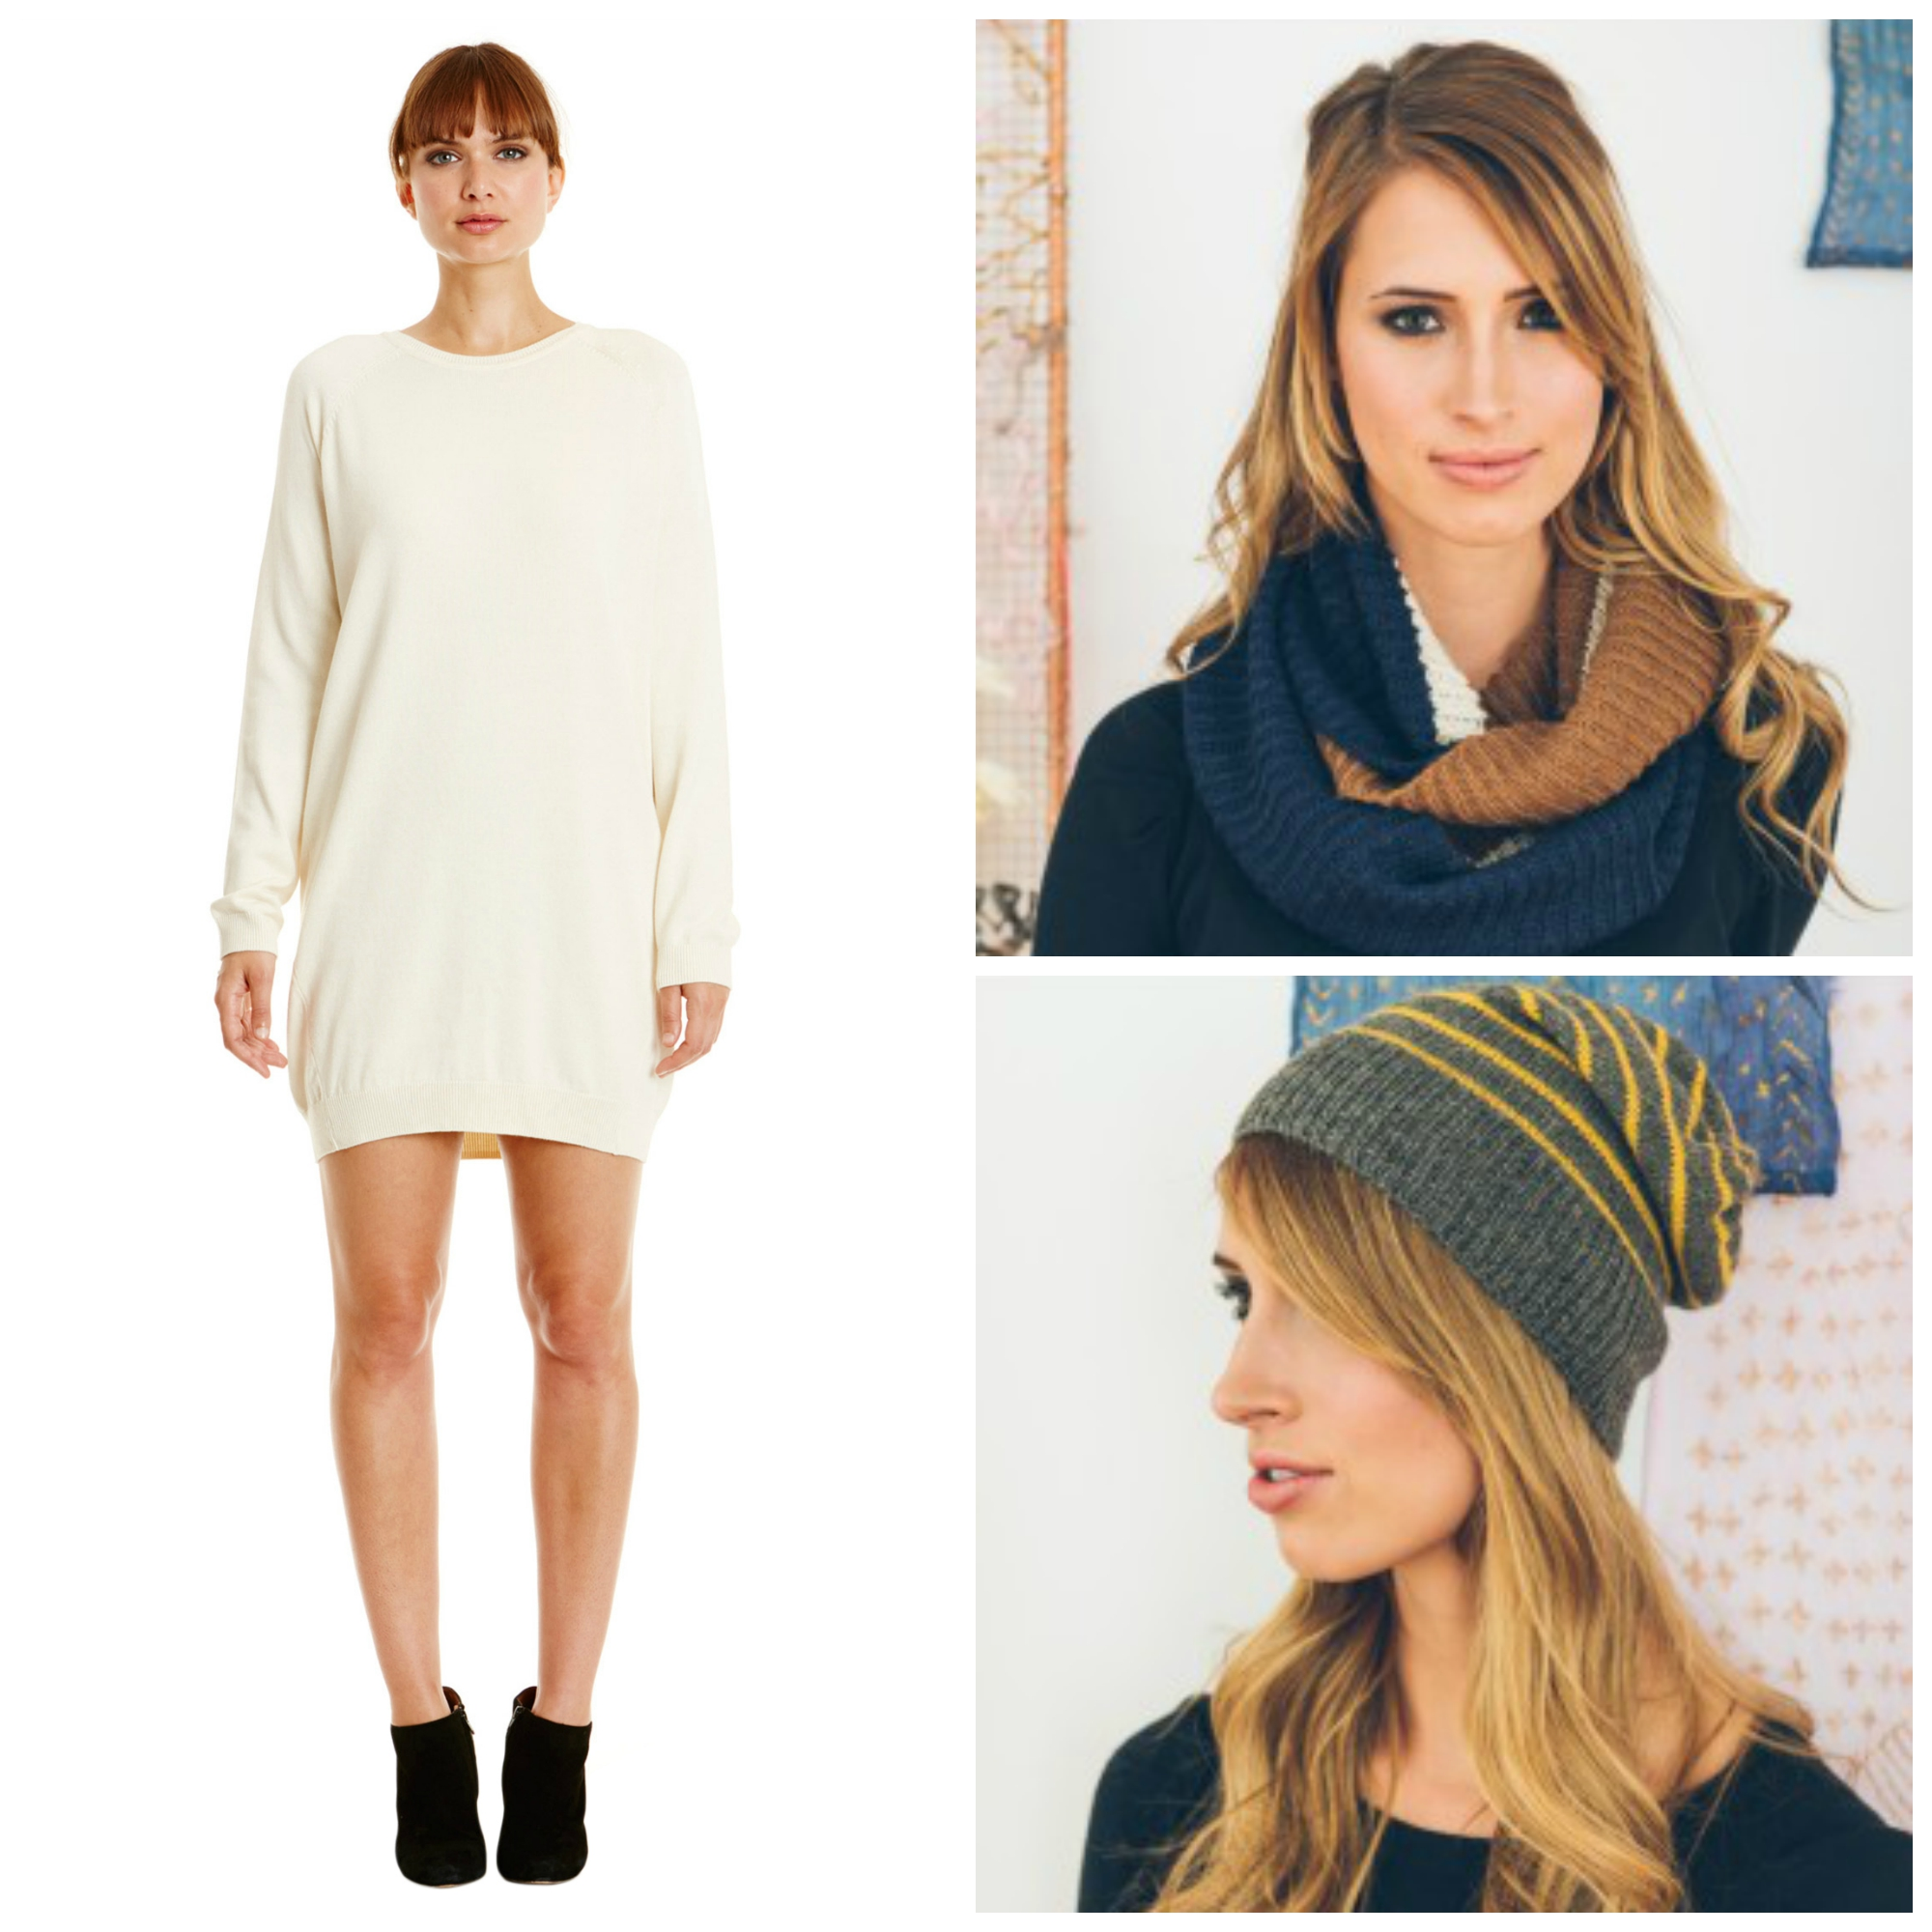 Fall knits collage